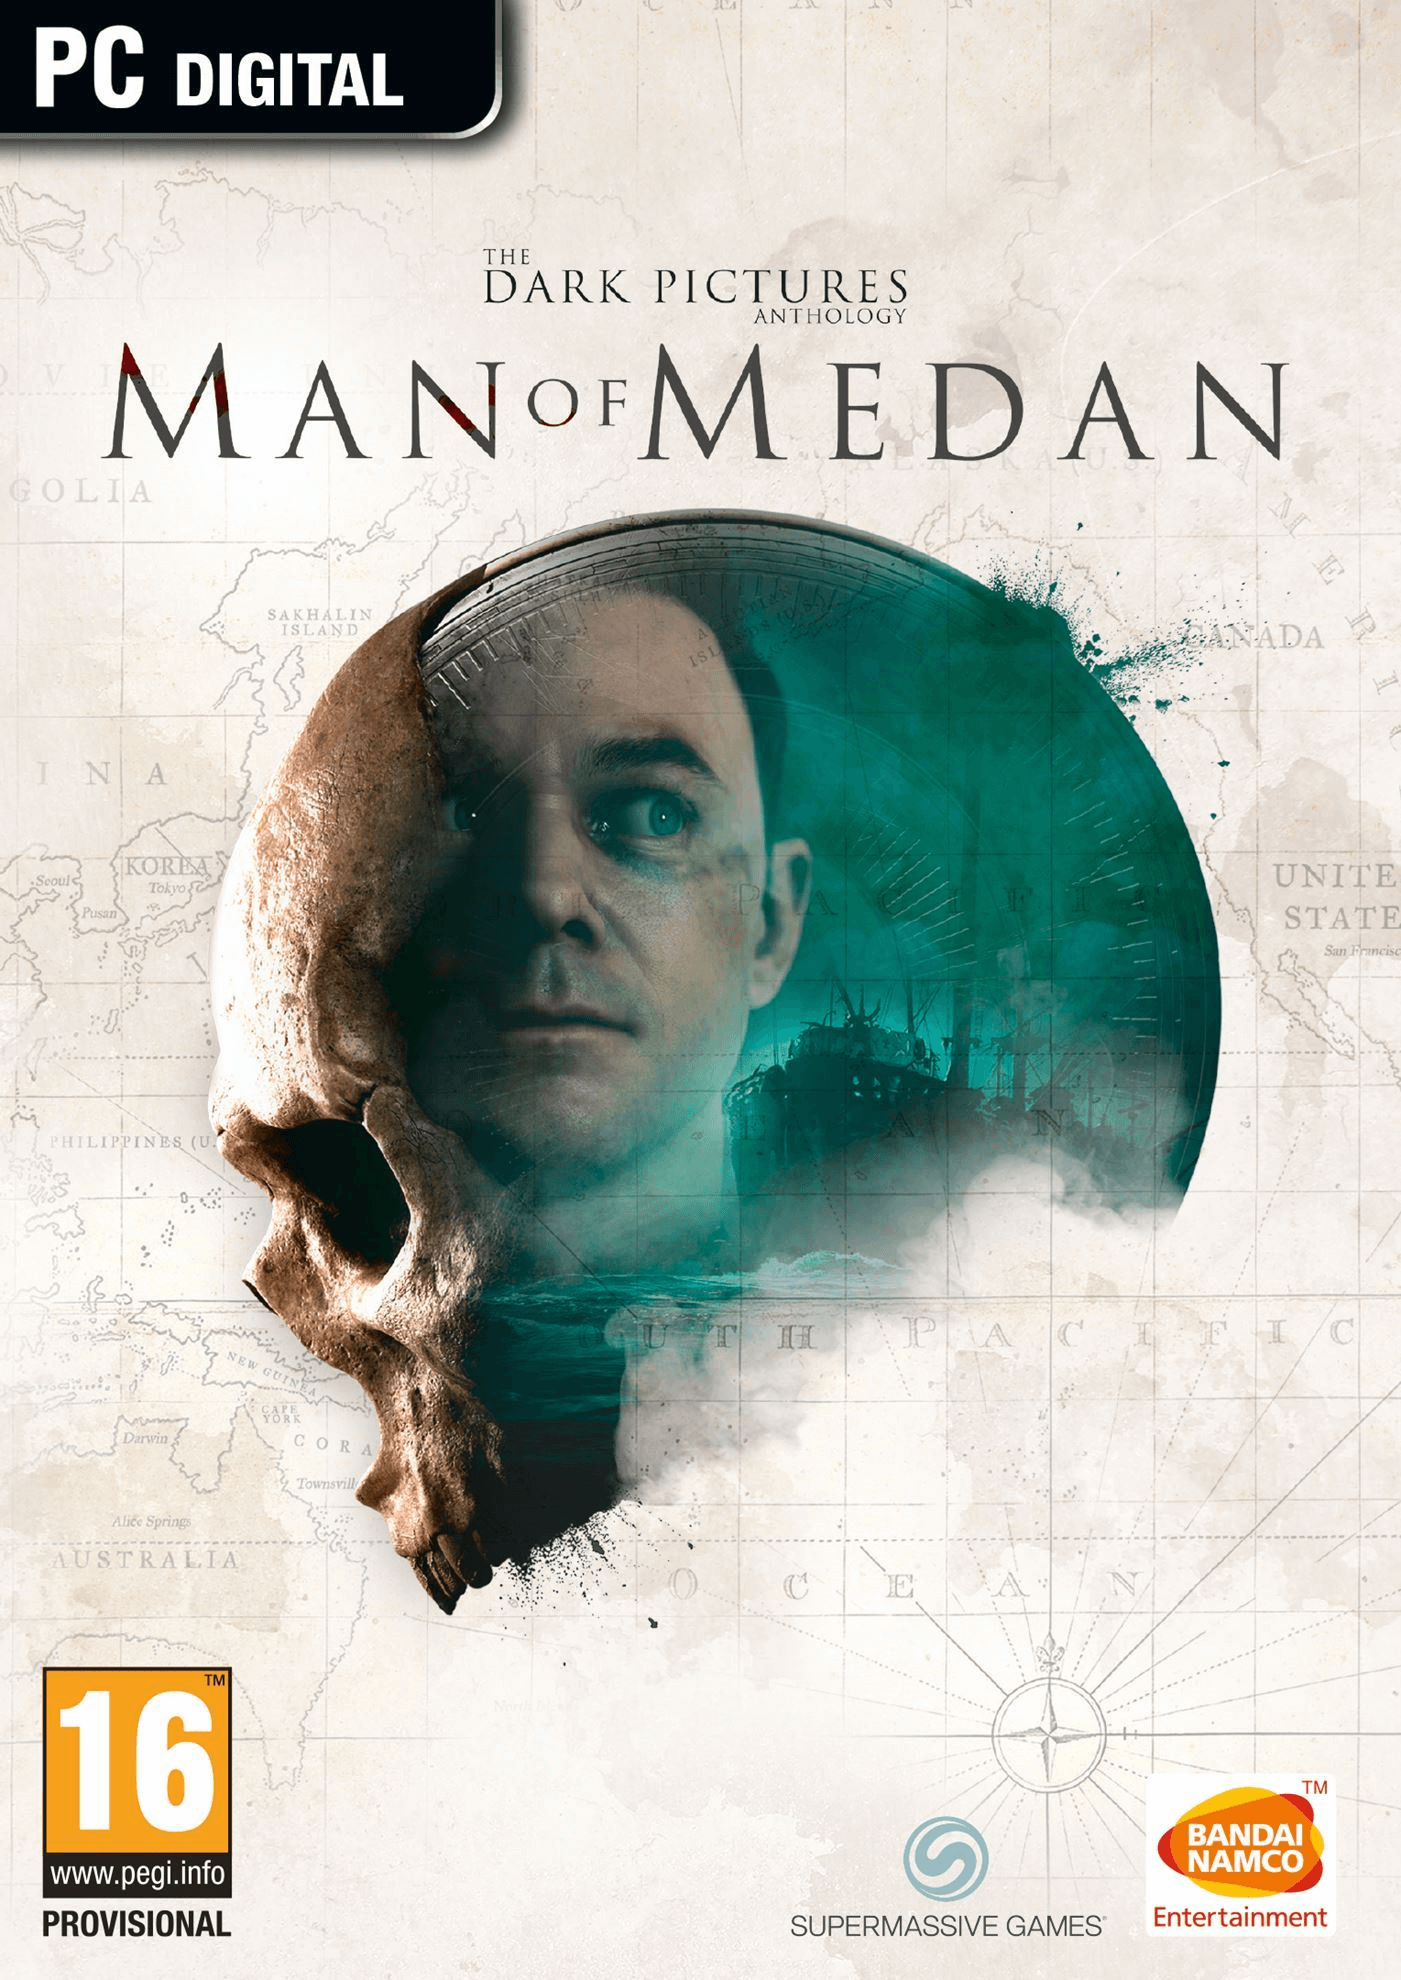 The Dark Pictures Anthology: Man Of Medan Preorder Edition